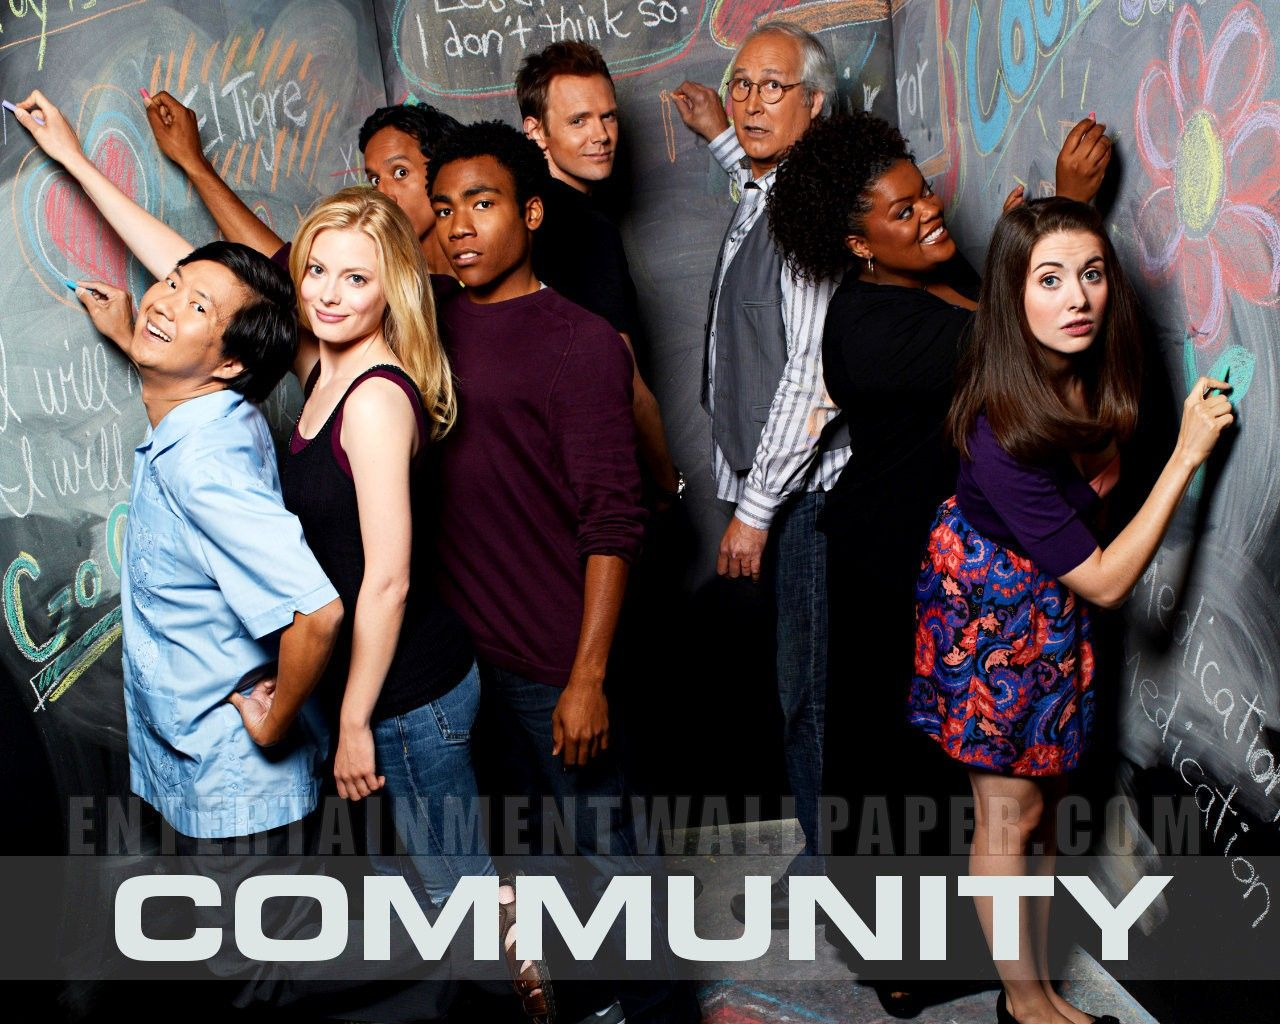 Comunity Tv Show Tagged With Community Hd Desktop Wallpapers